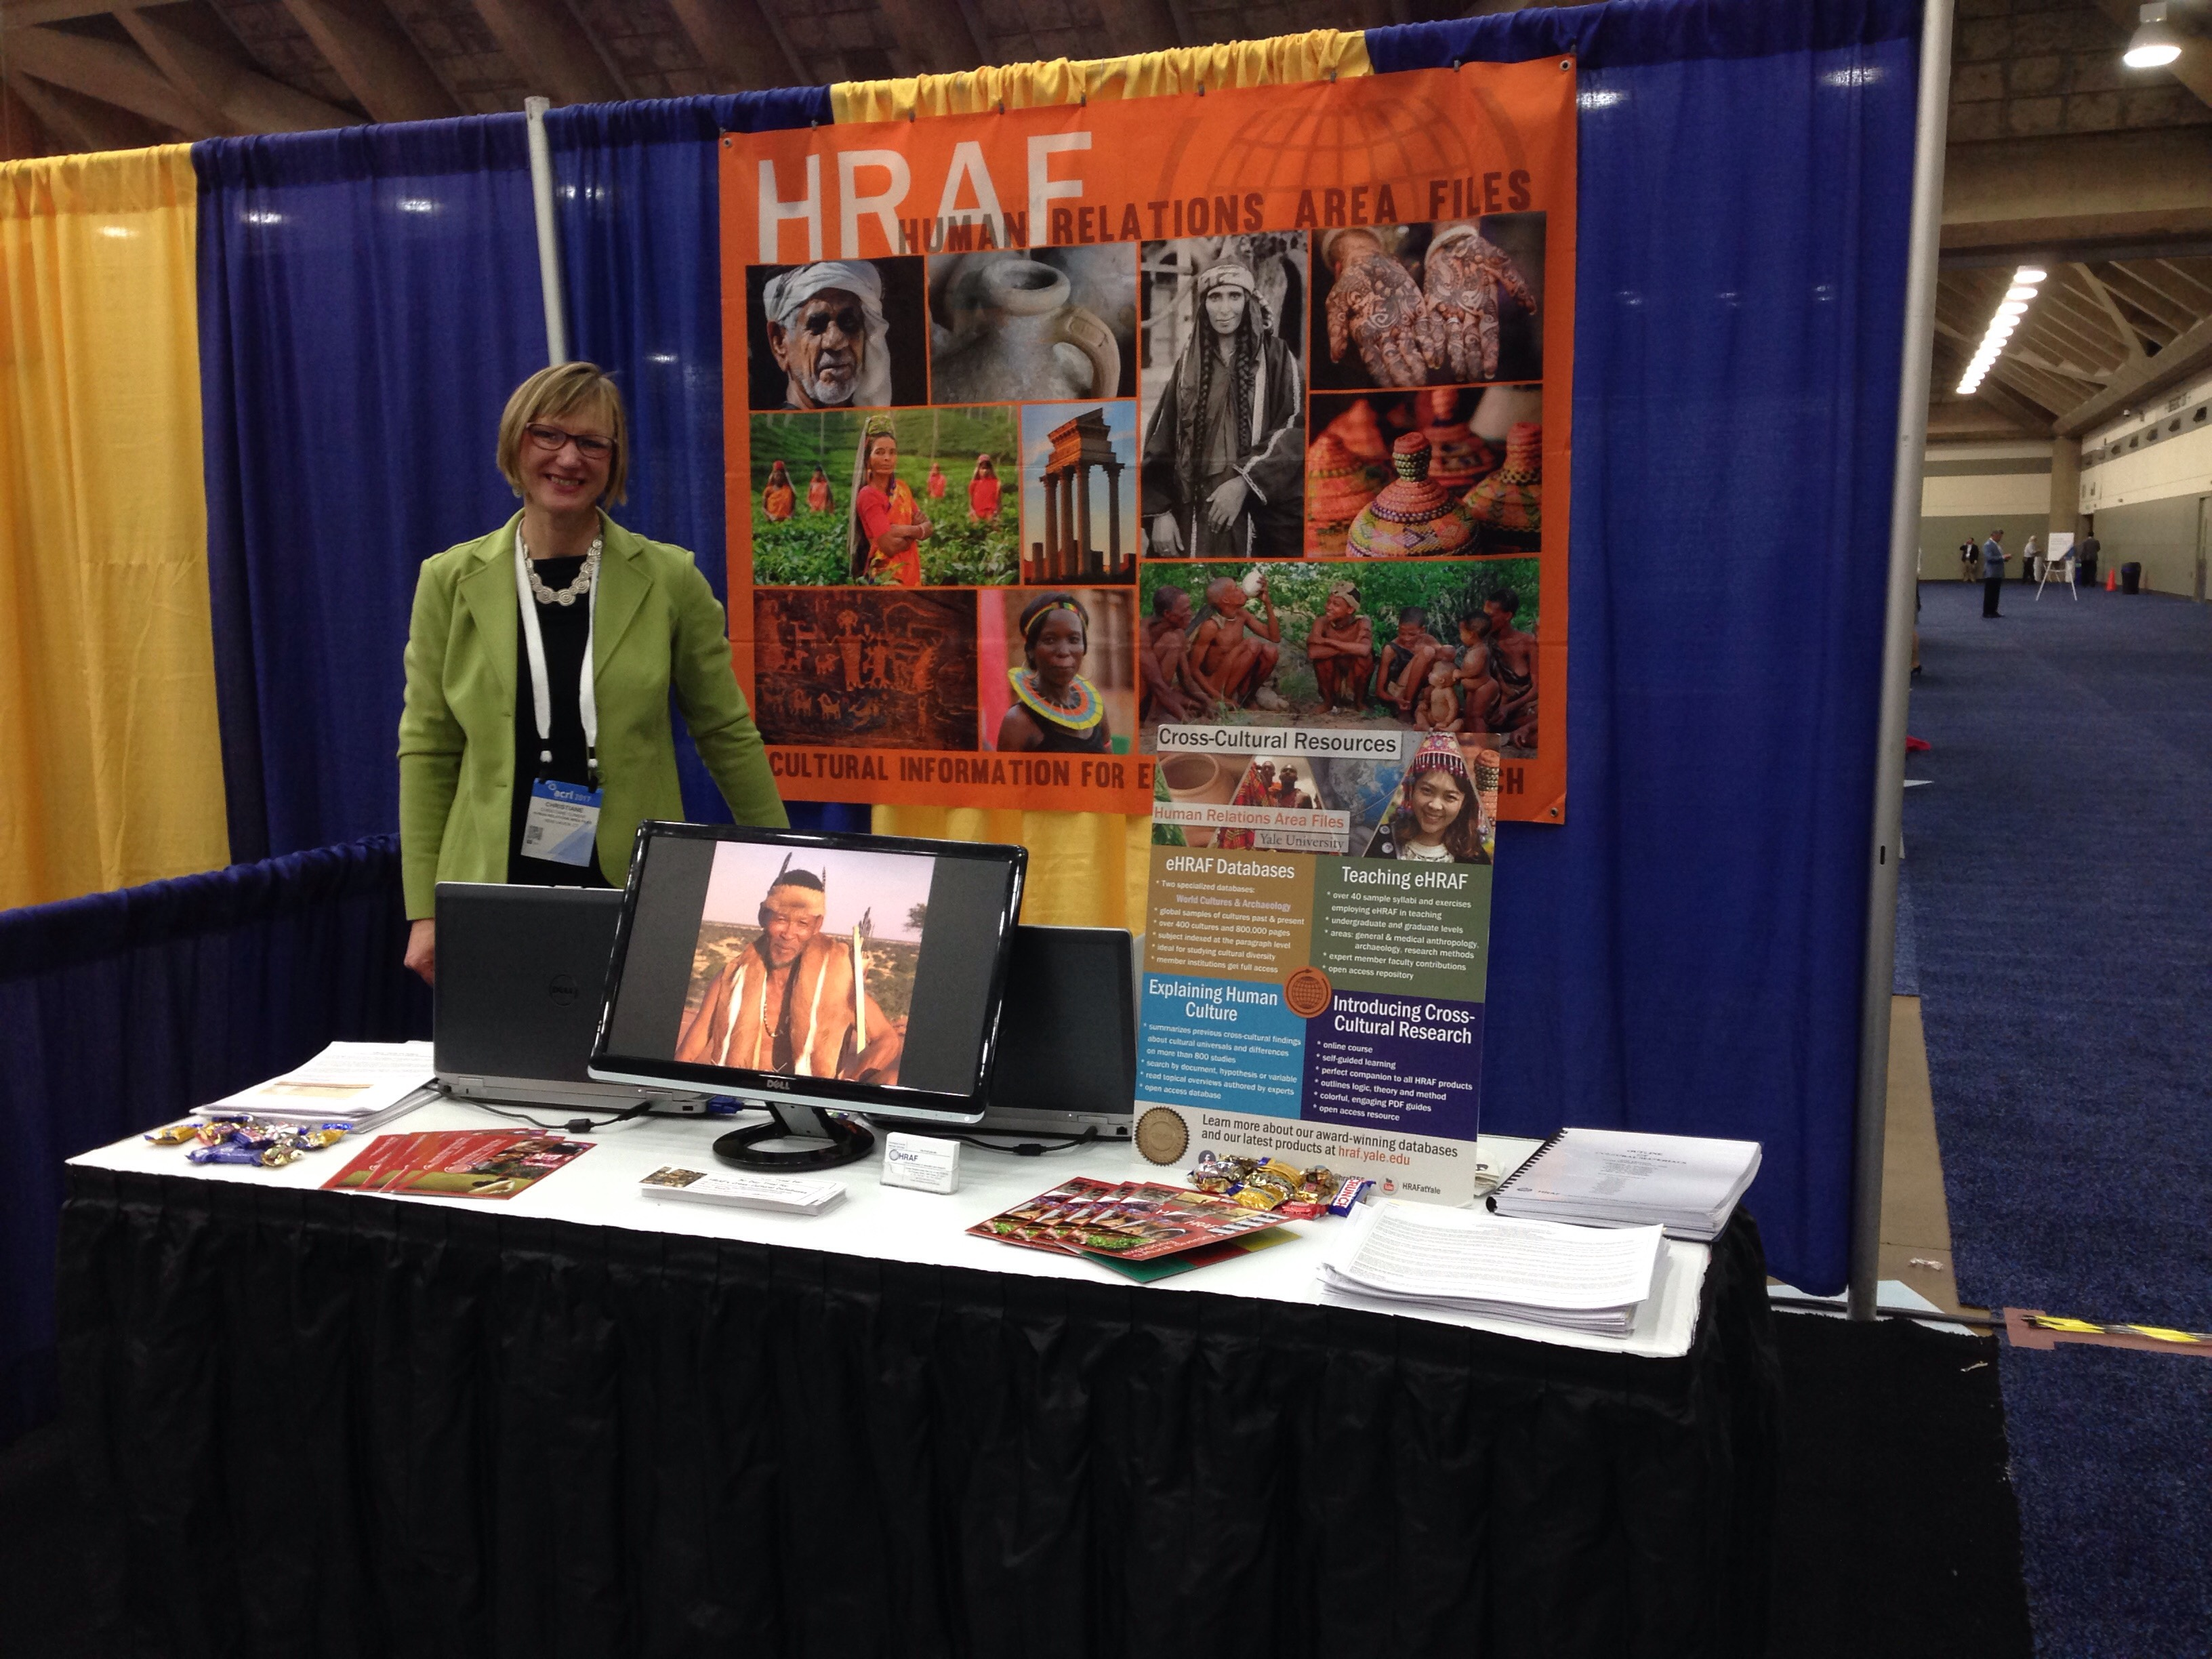 HRAF at Association of College & Research Libraries (ACRL) Conference in Baltimore, MD (22-24 Mar 2017)